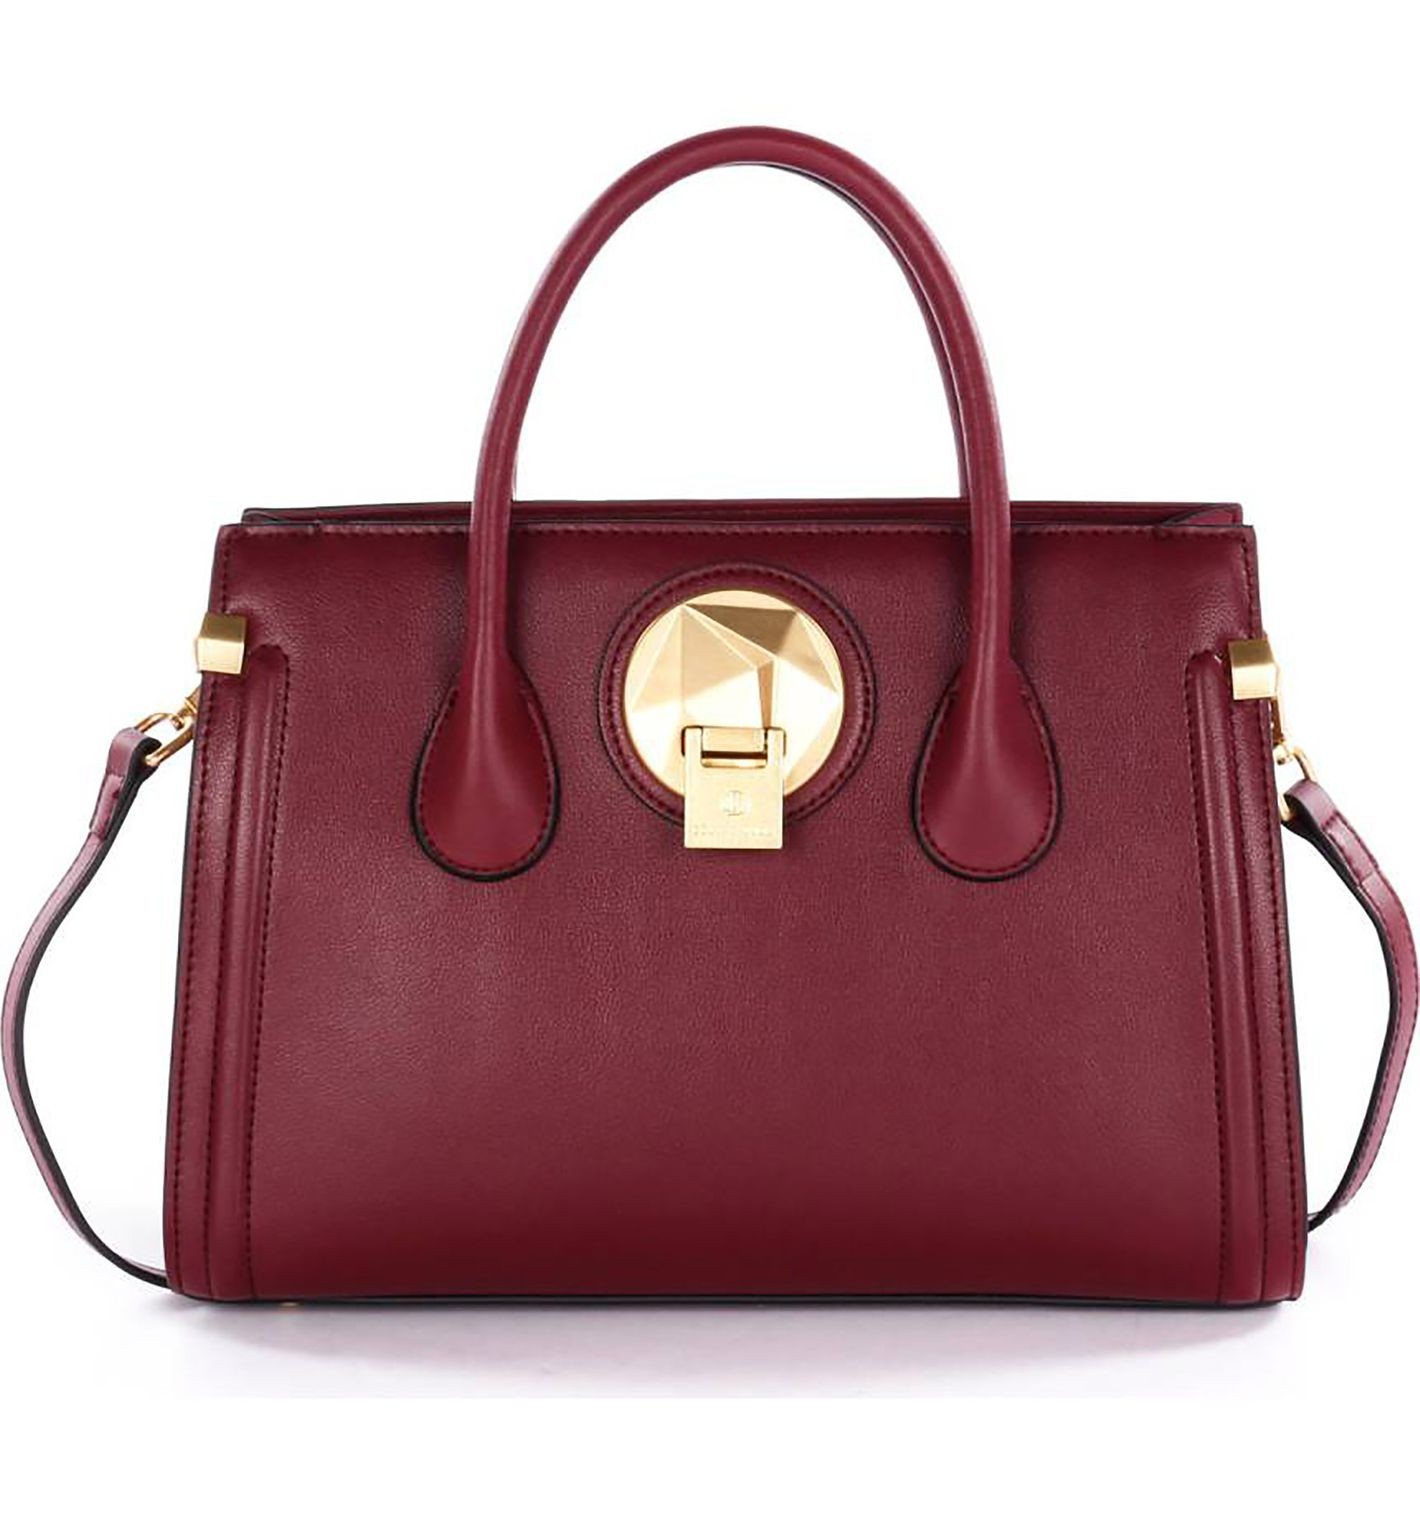 Céline Dion Octave Leather Satchel